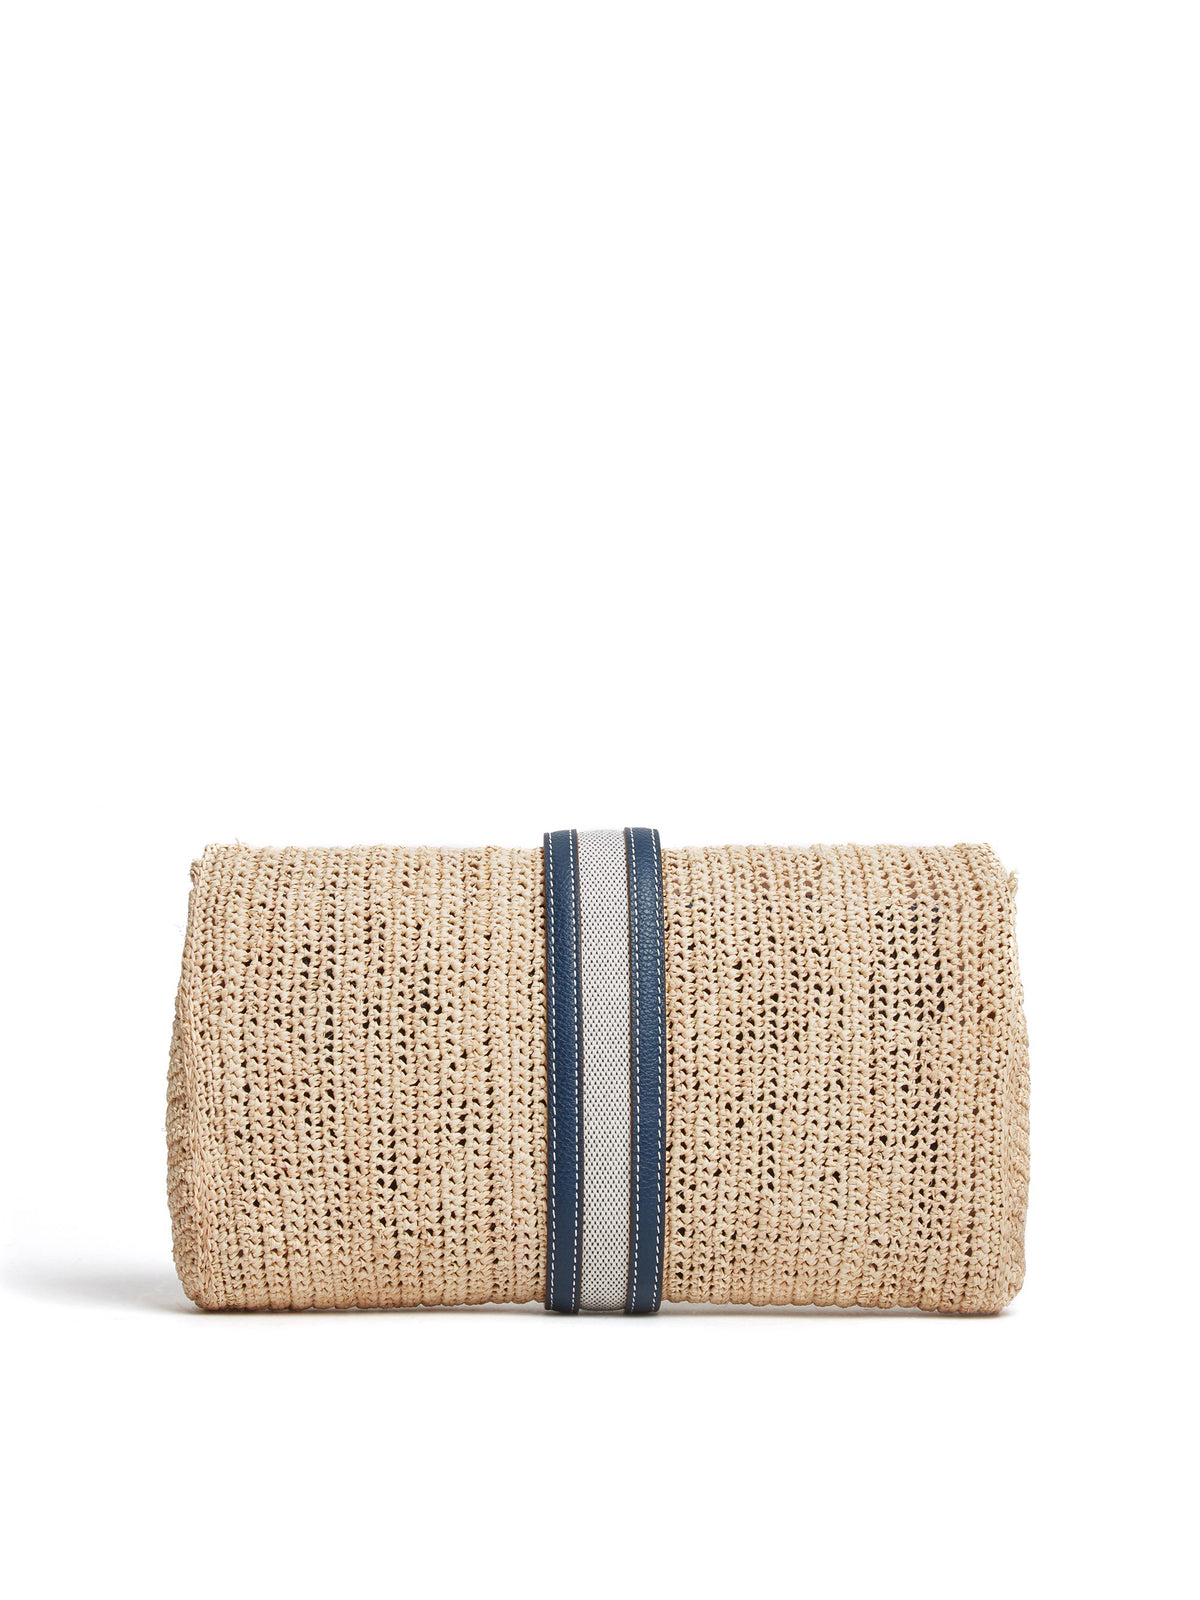 Mark Cross Sylvette Raffia & Leather Clutch Tumbled Grain Navy / Birdseye / Natural Raffia Back